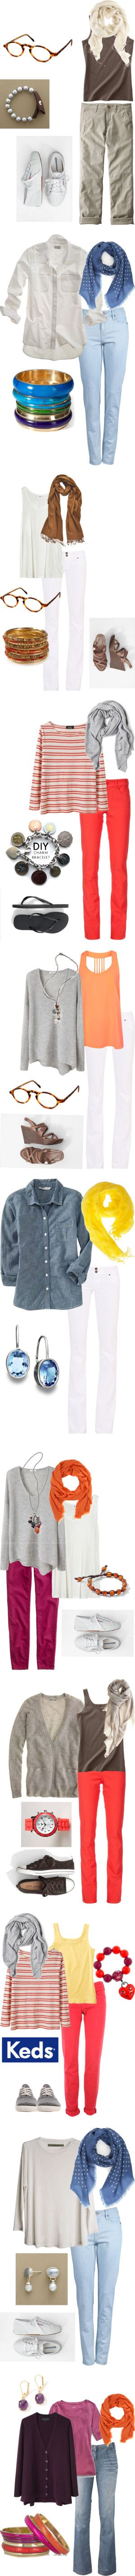 Is it Summer Yet? by simple-wardrobe on Polyvore featuring мода, Uniqlo, J.Jill, H&M, THVM, Madewell, Antik Batik, Hudson Jeans, Vanessa Bruno and PASHMINA ART